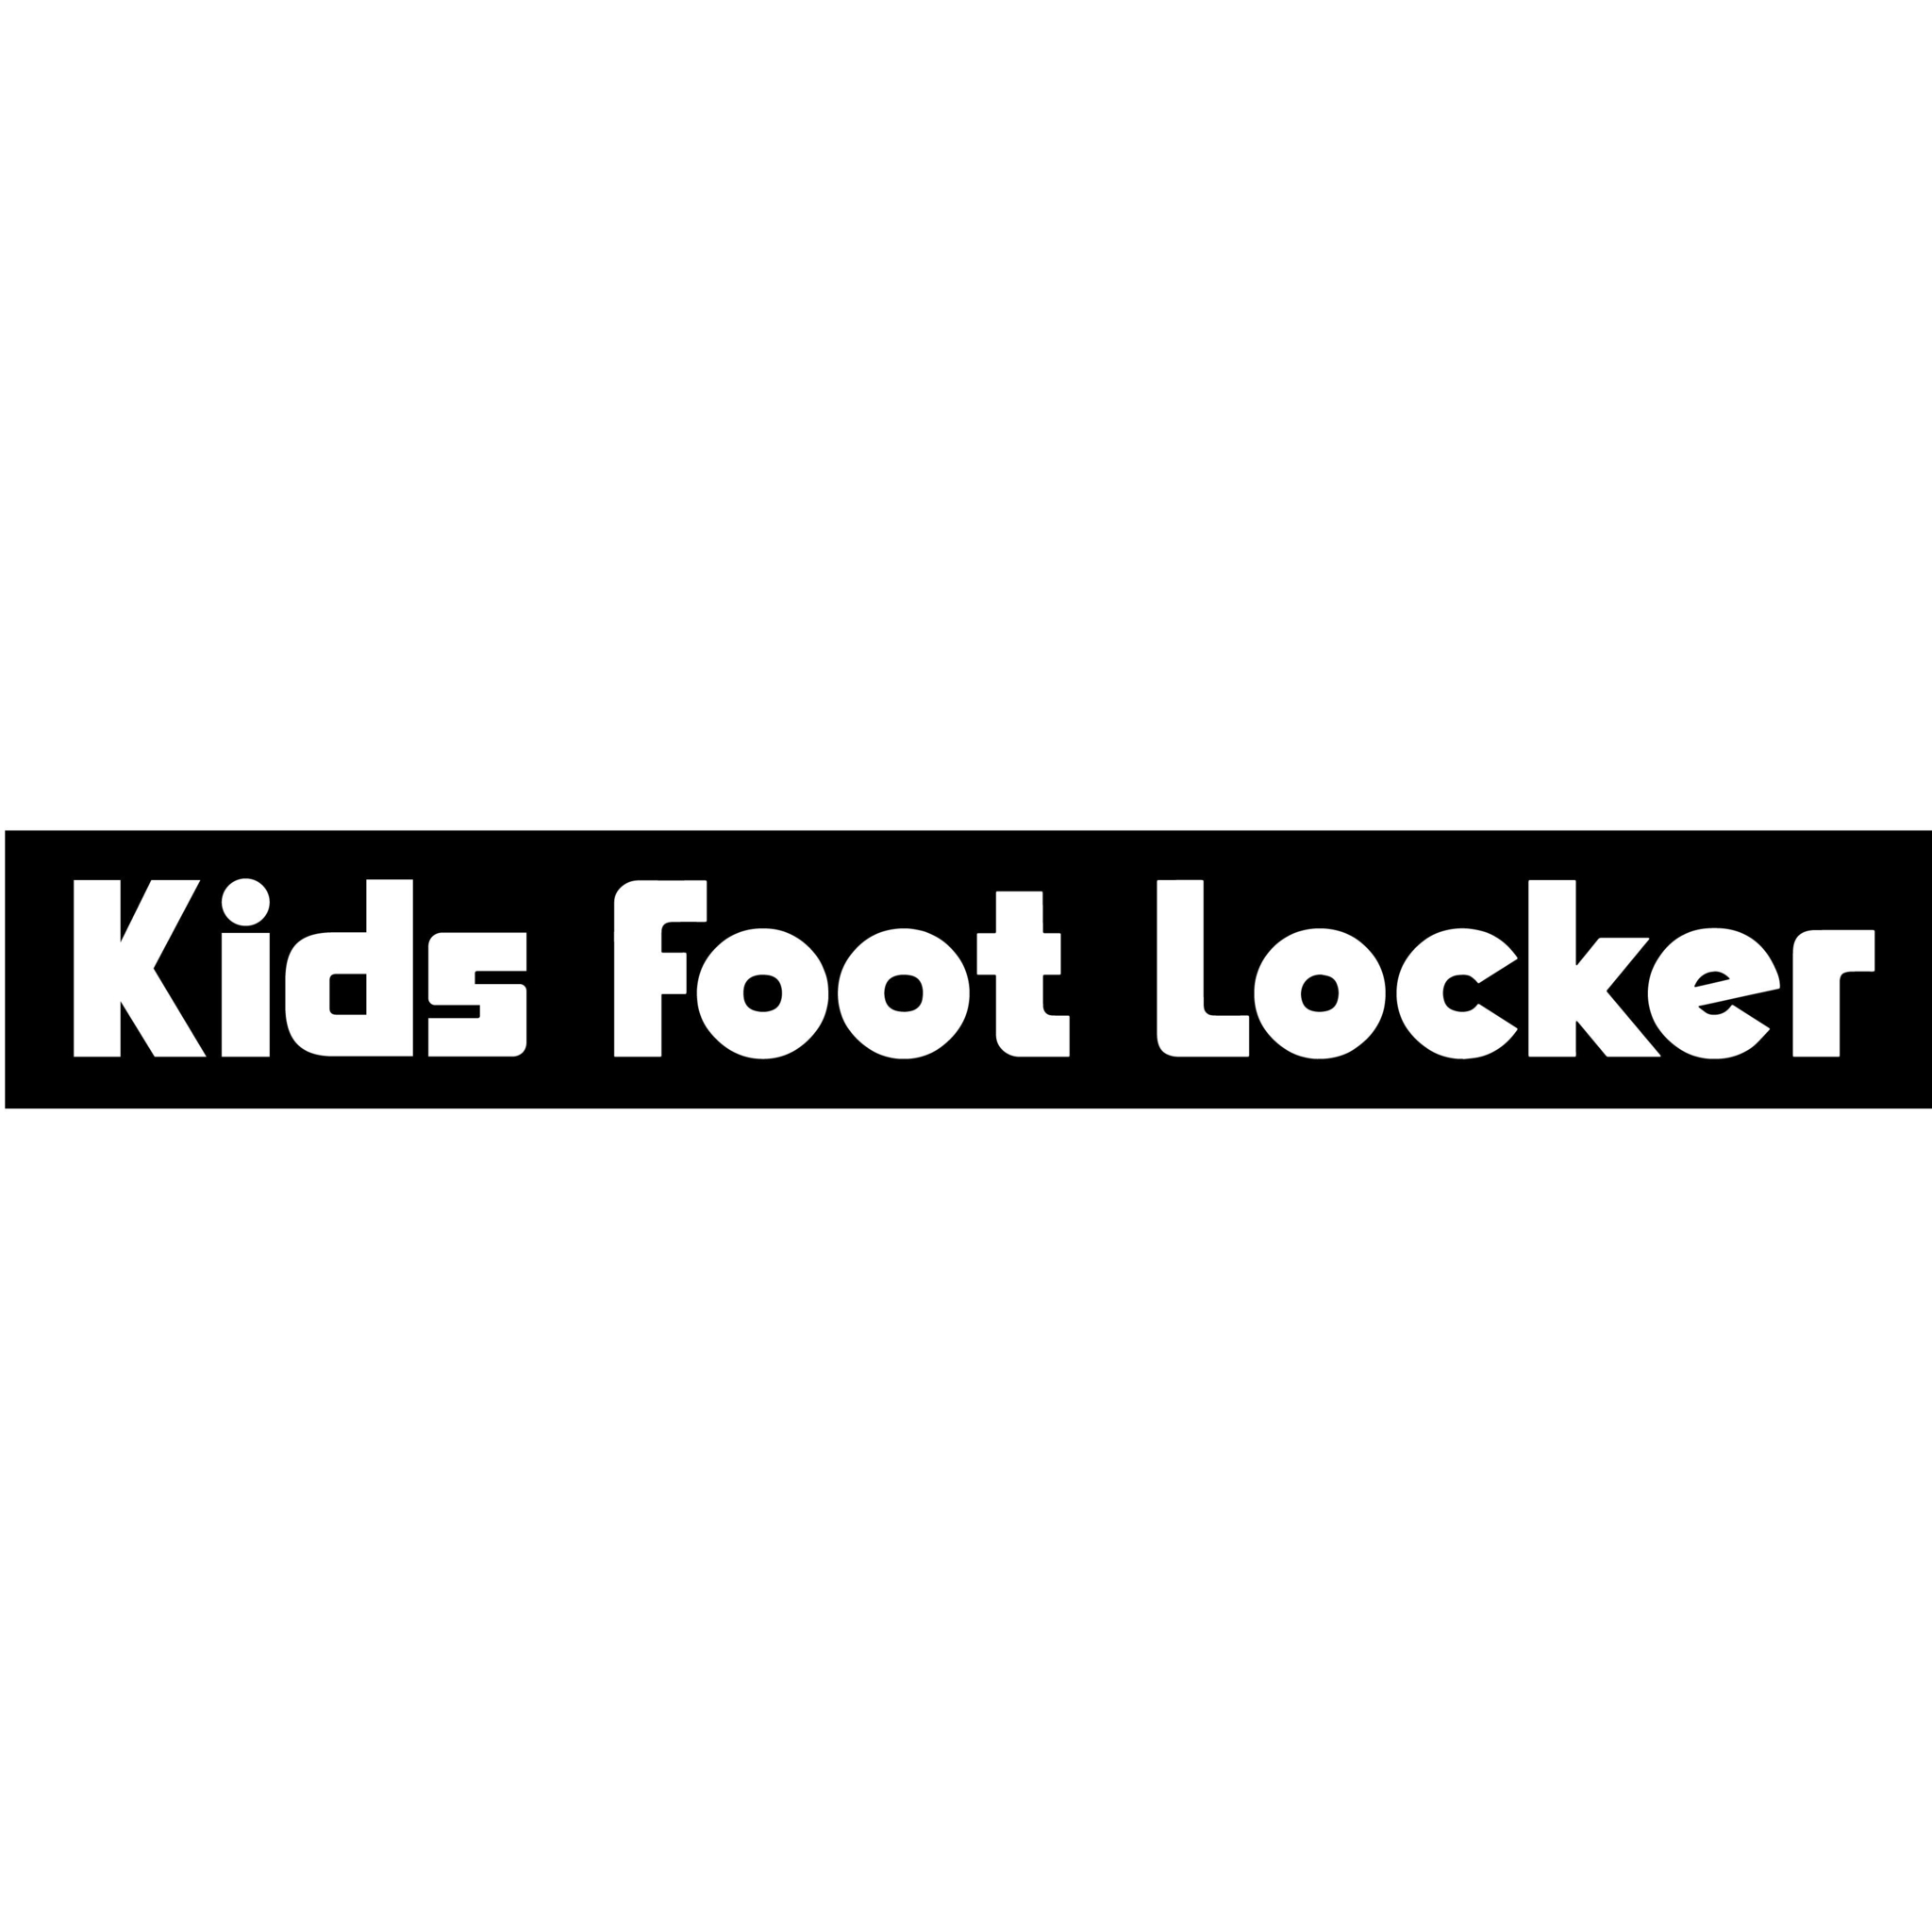 Kids Foot Locker - Shoe Stores